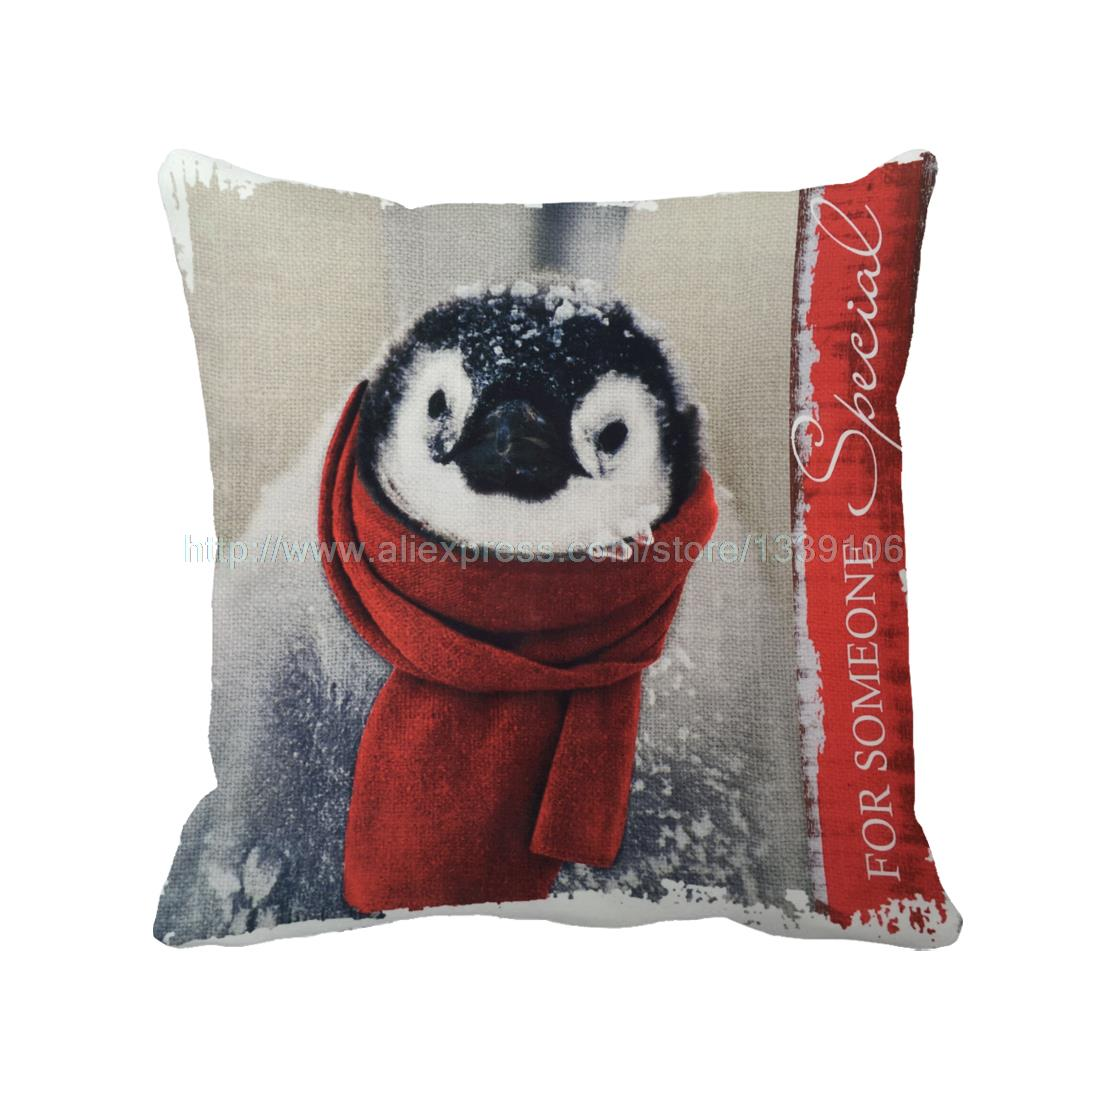 Christmas Cute Joyous Penguin Throw Pillow Custom Decorative Pillows Almofada Luxury Sofa Chair Cushion Home Decor Cojin Coussin